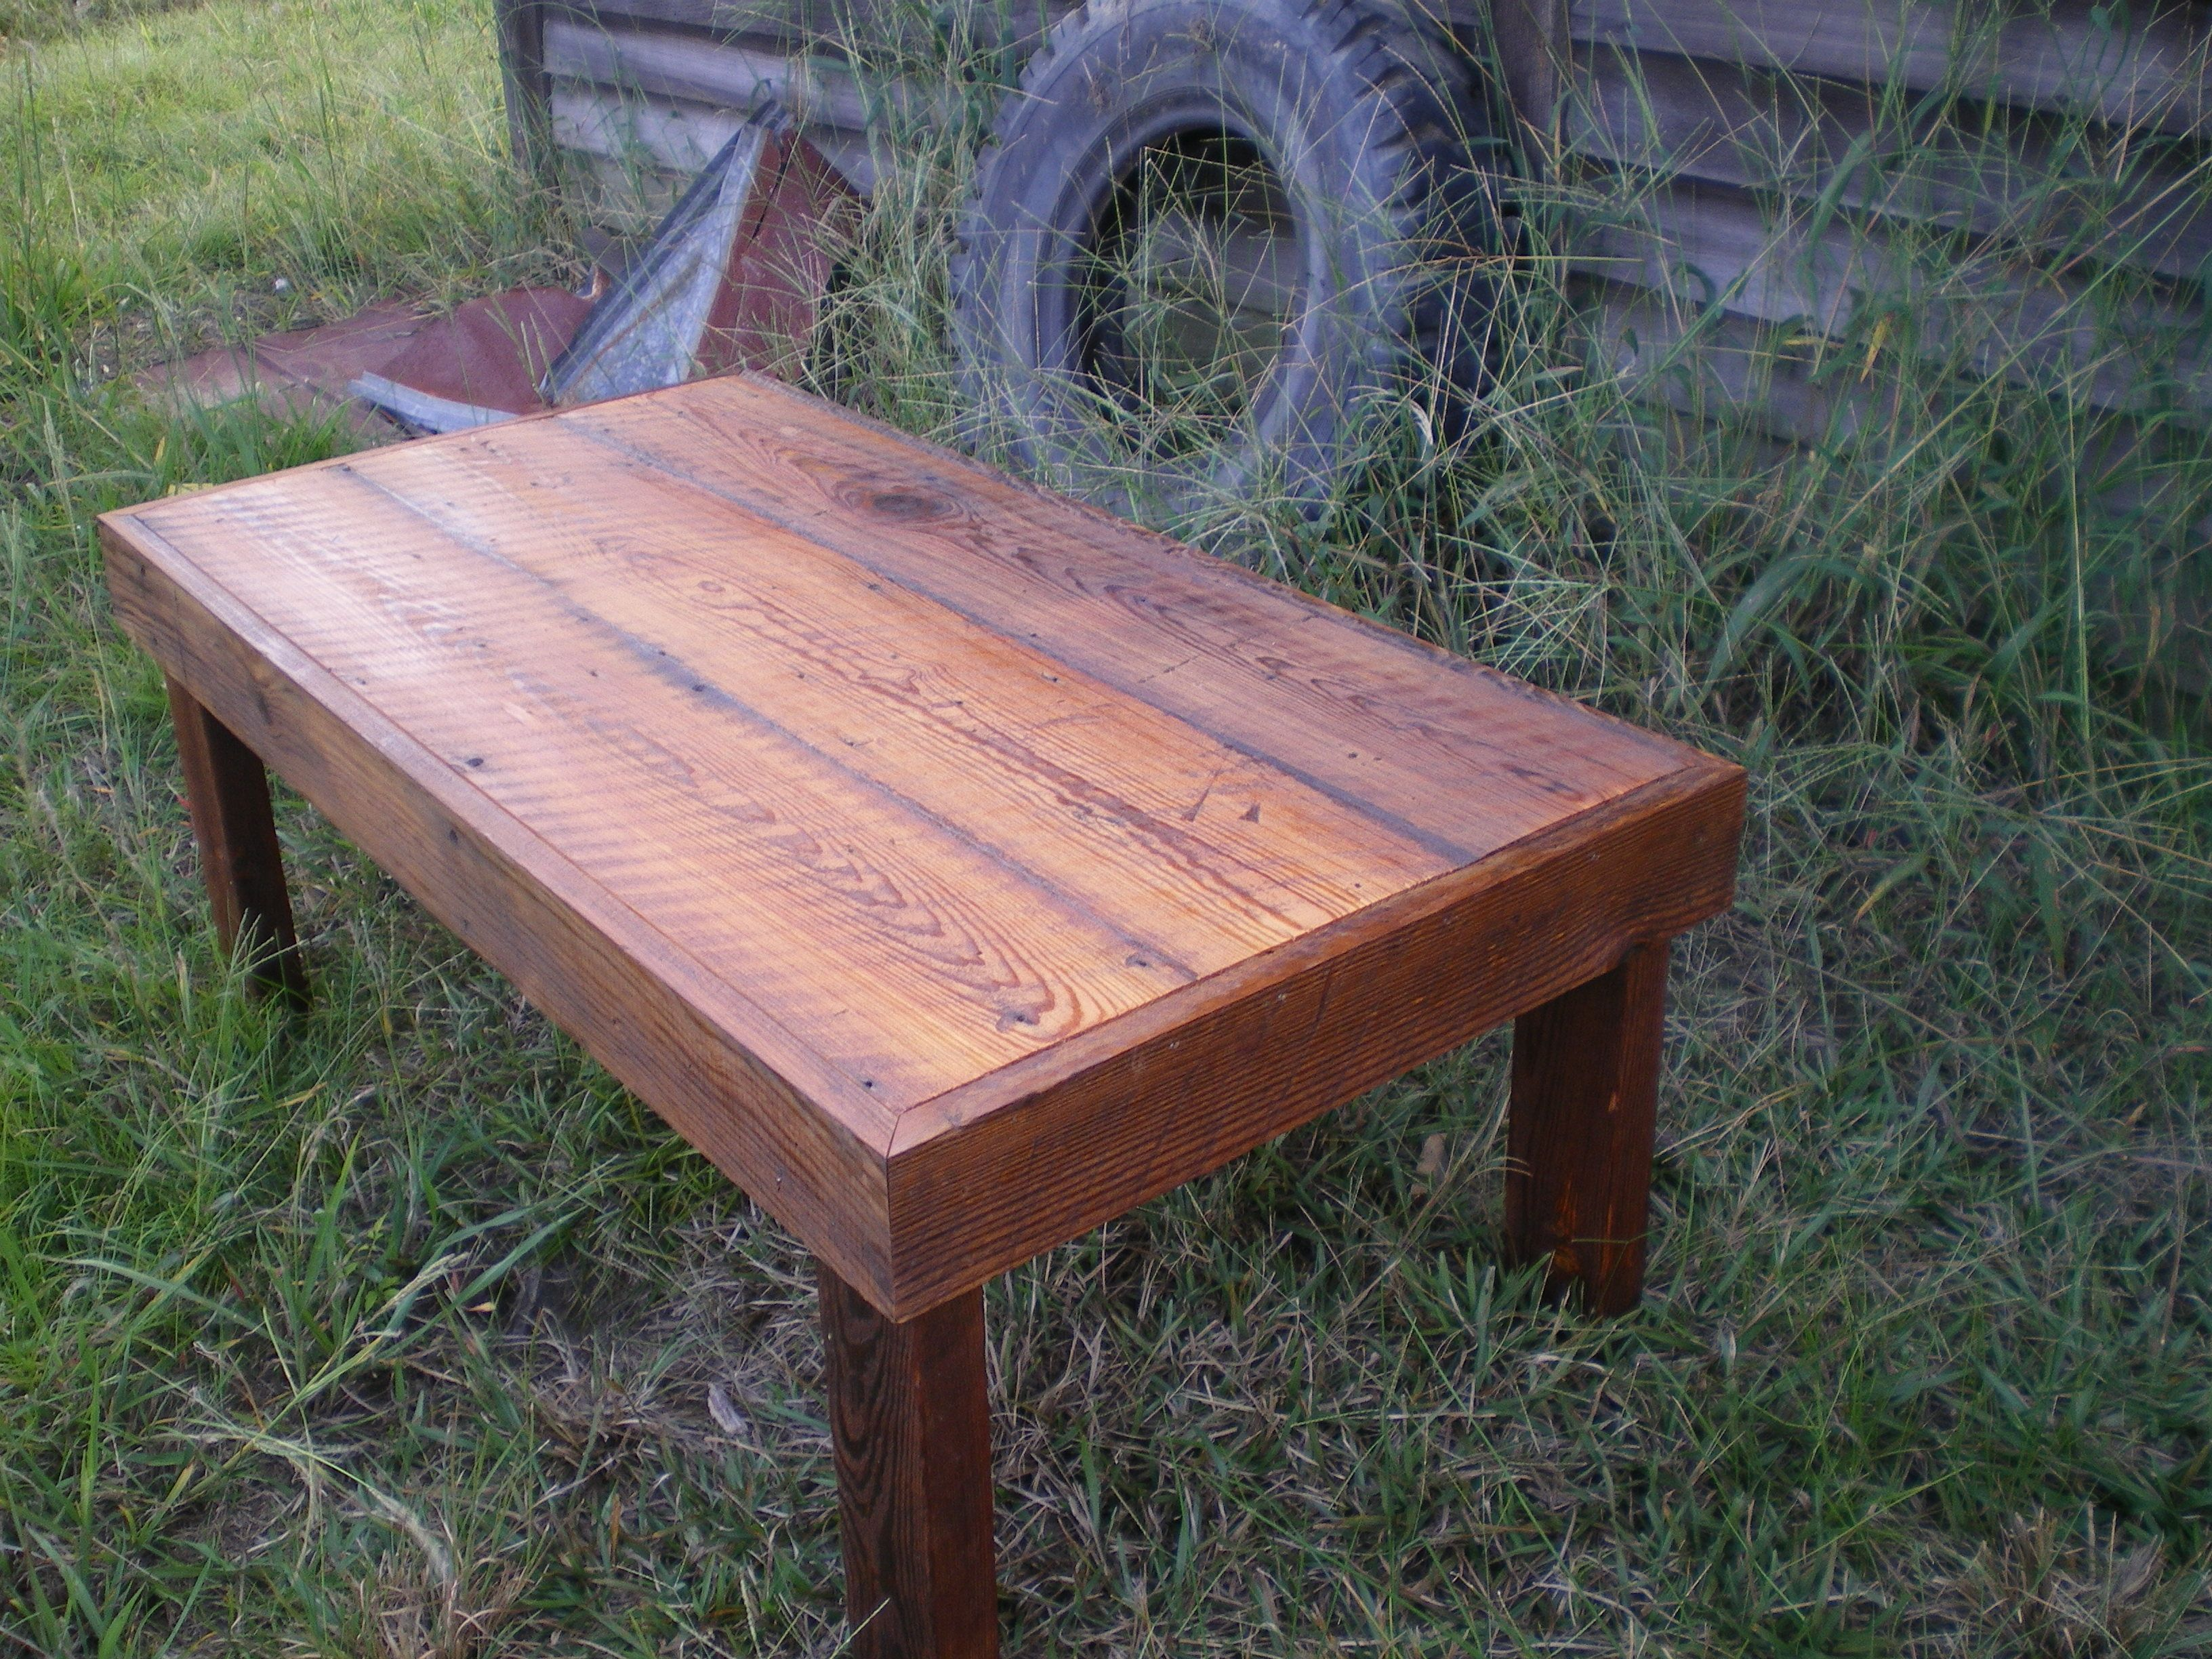 This Reclaimed Barn Wood Coffee Table Features Mitered